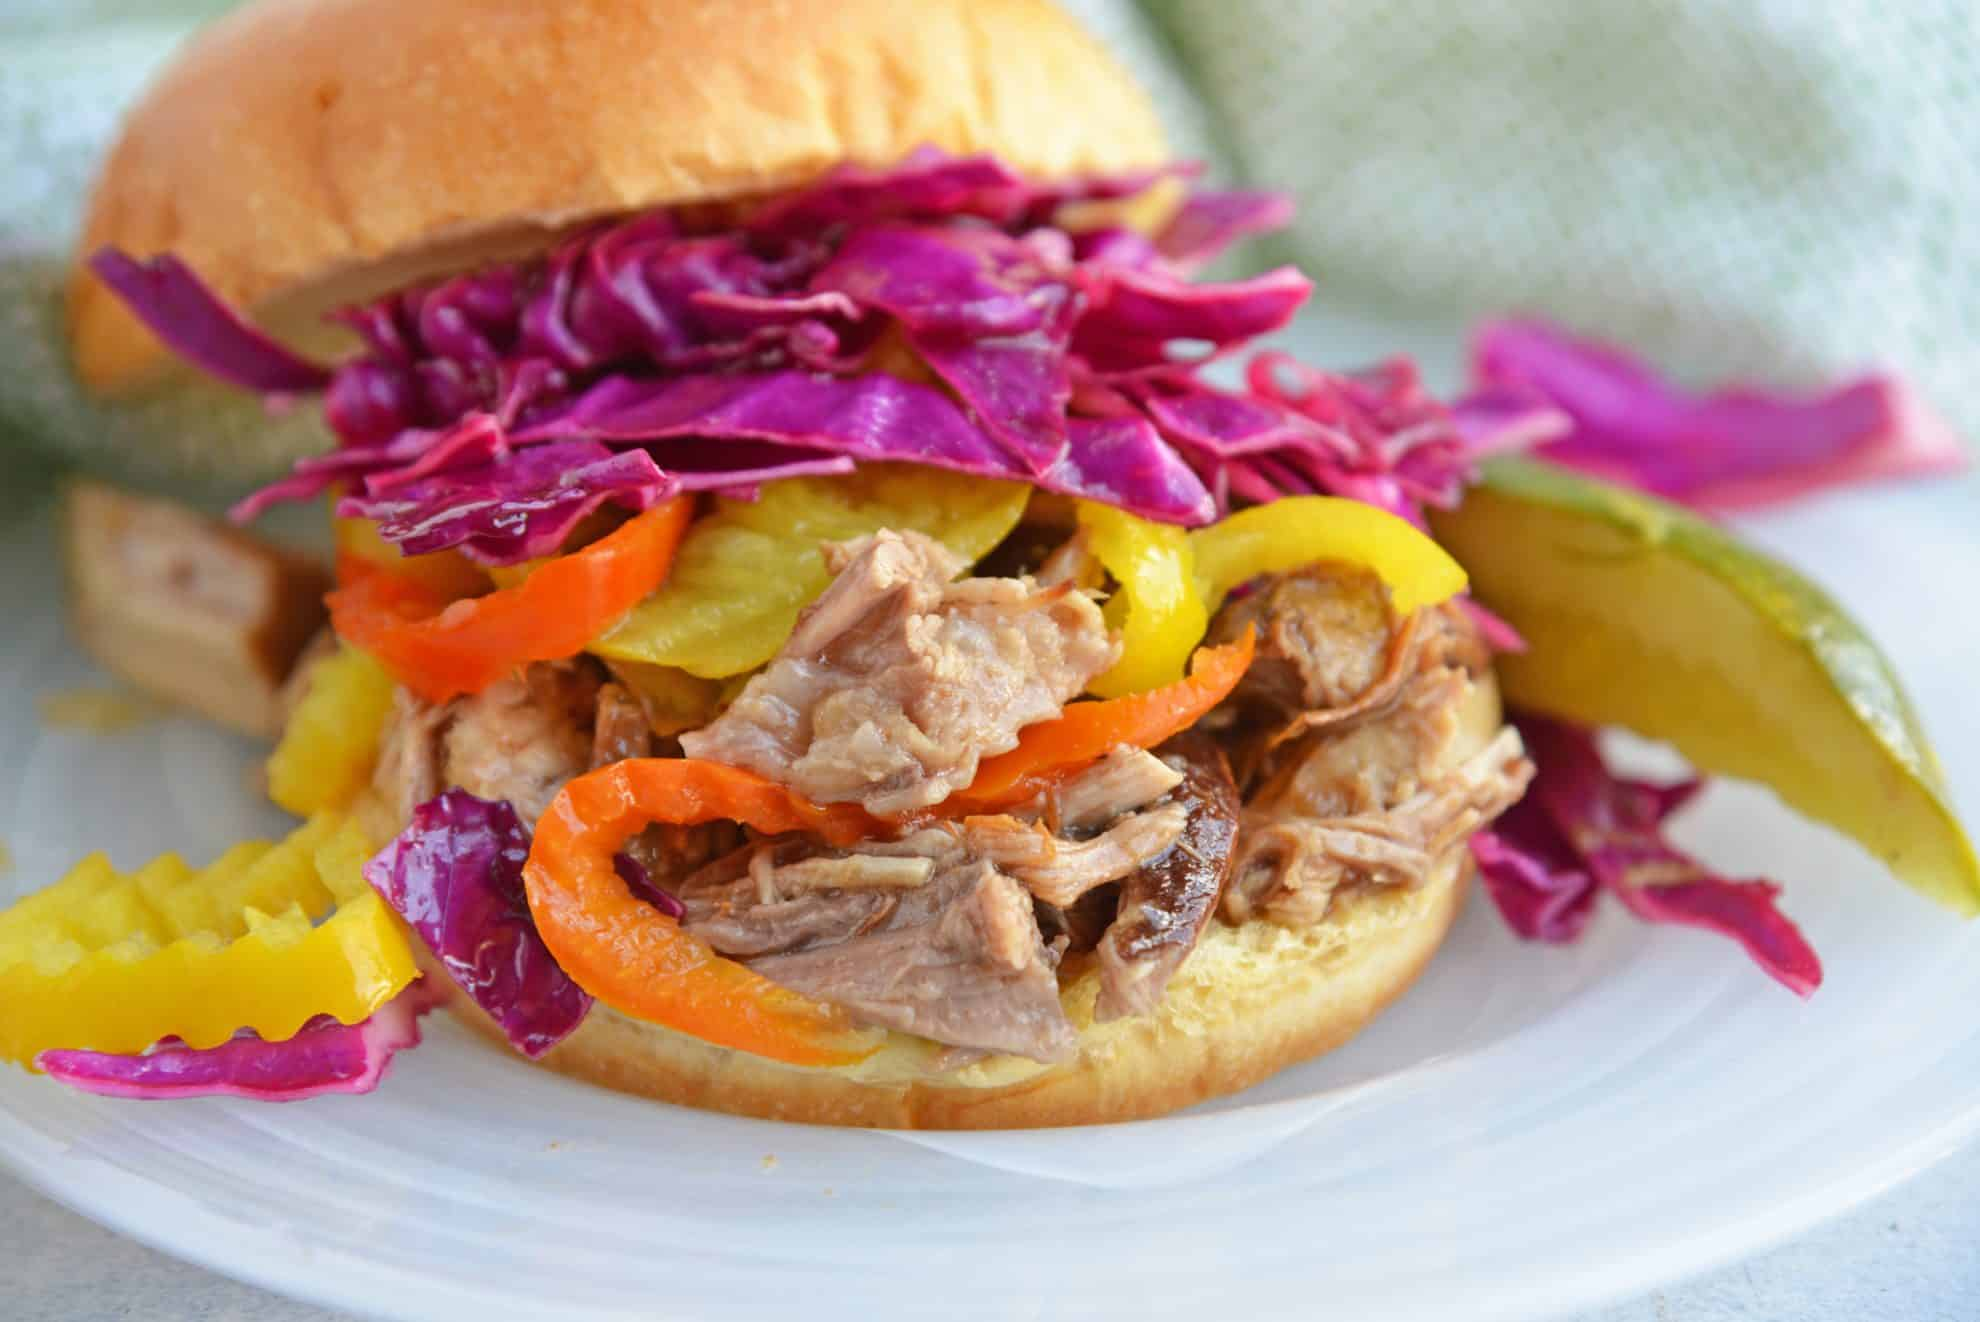 Angle of pulled pork sandwich with red cabbage slaw and pickles